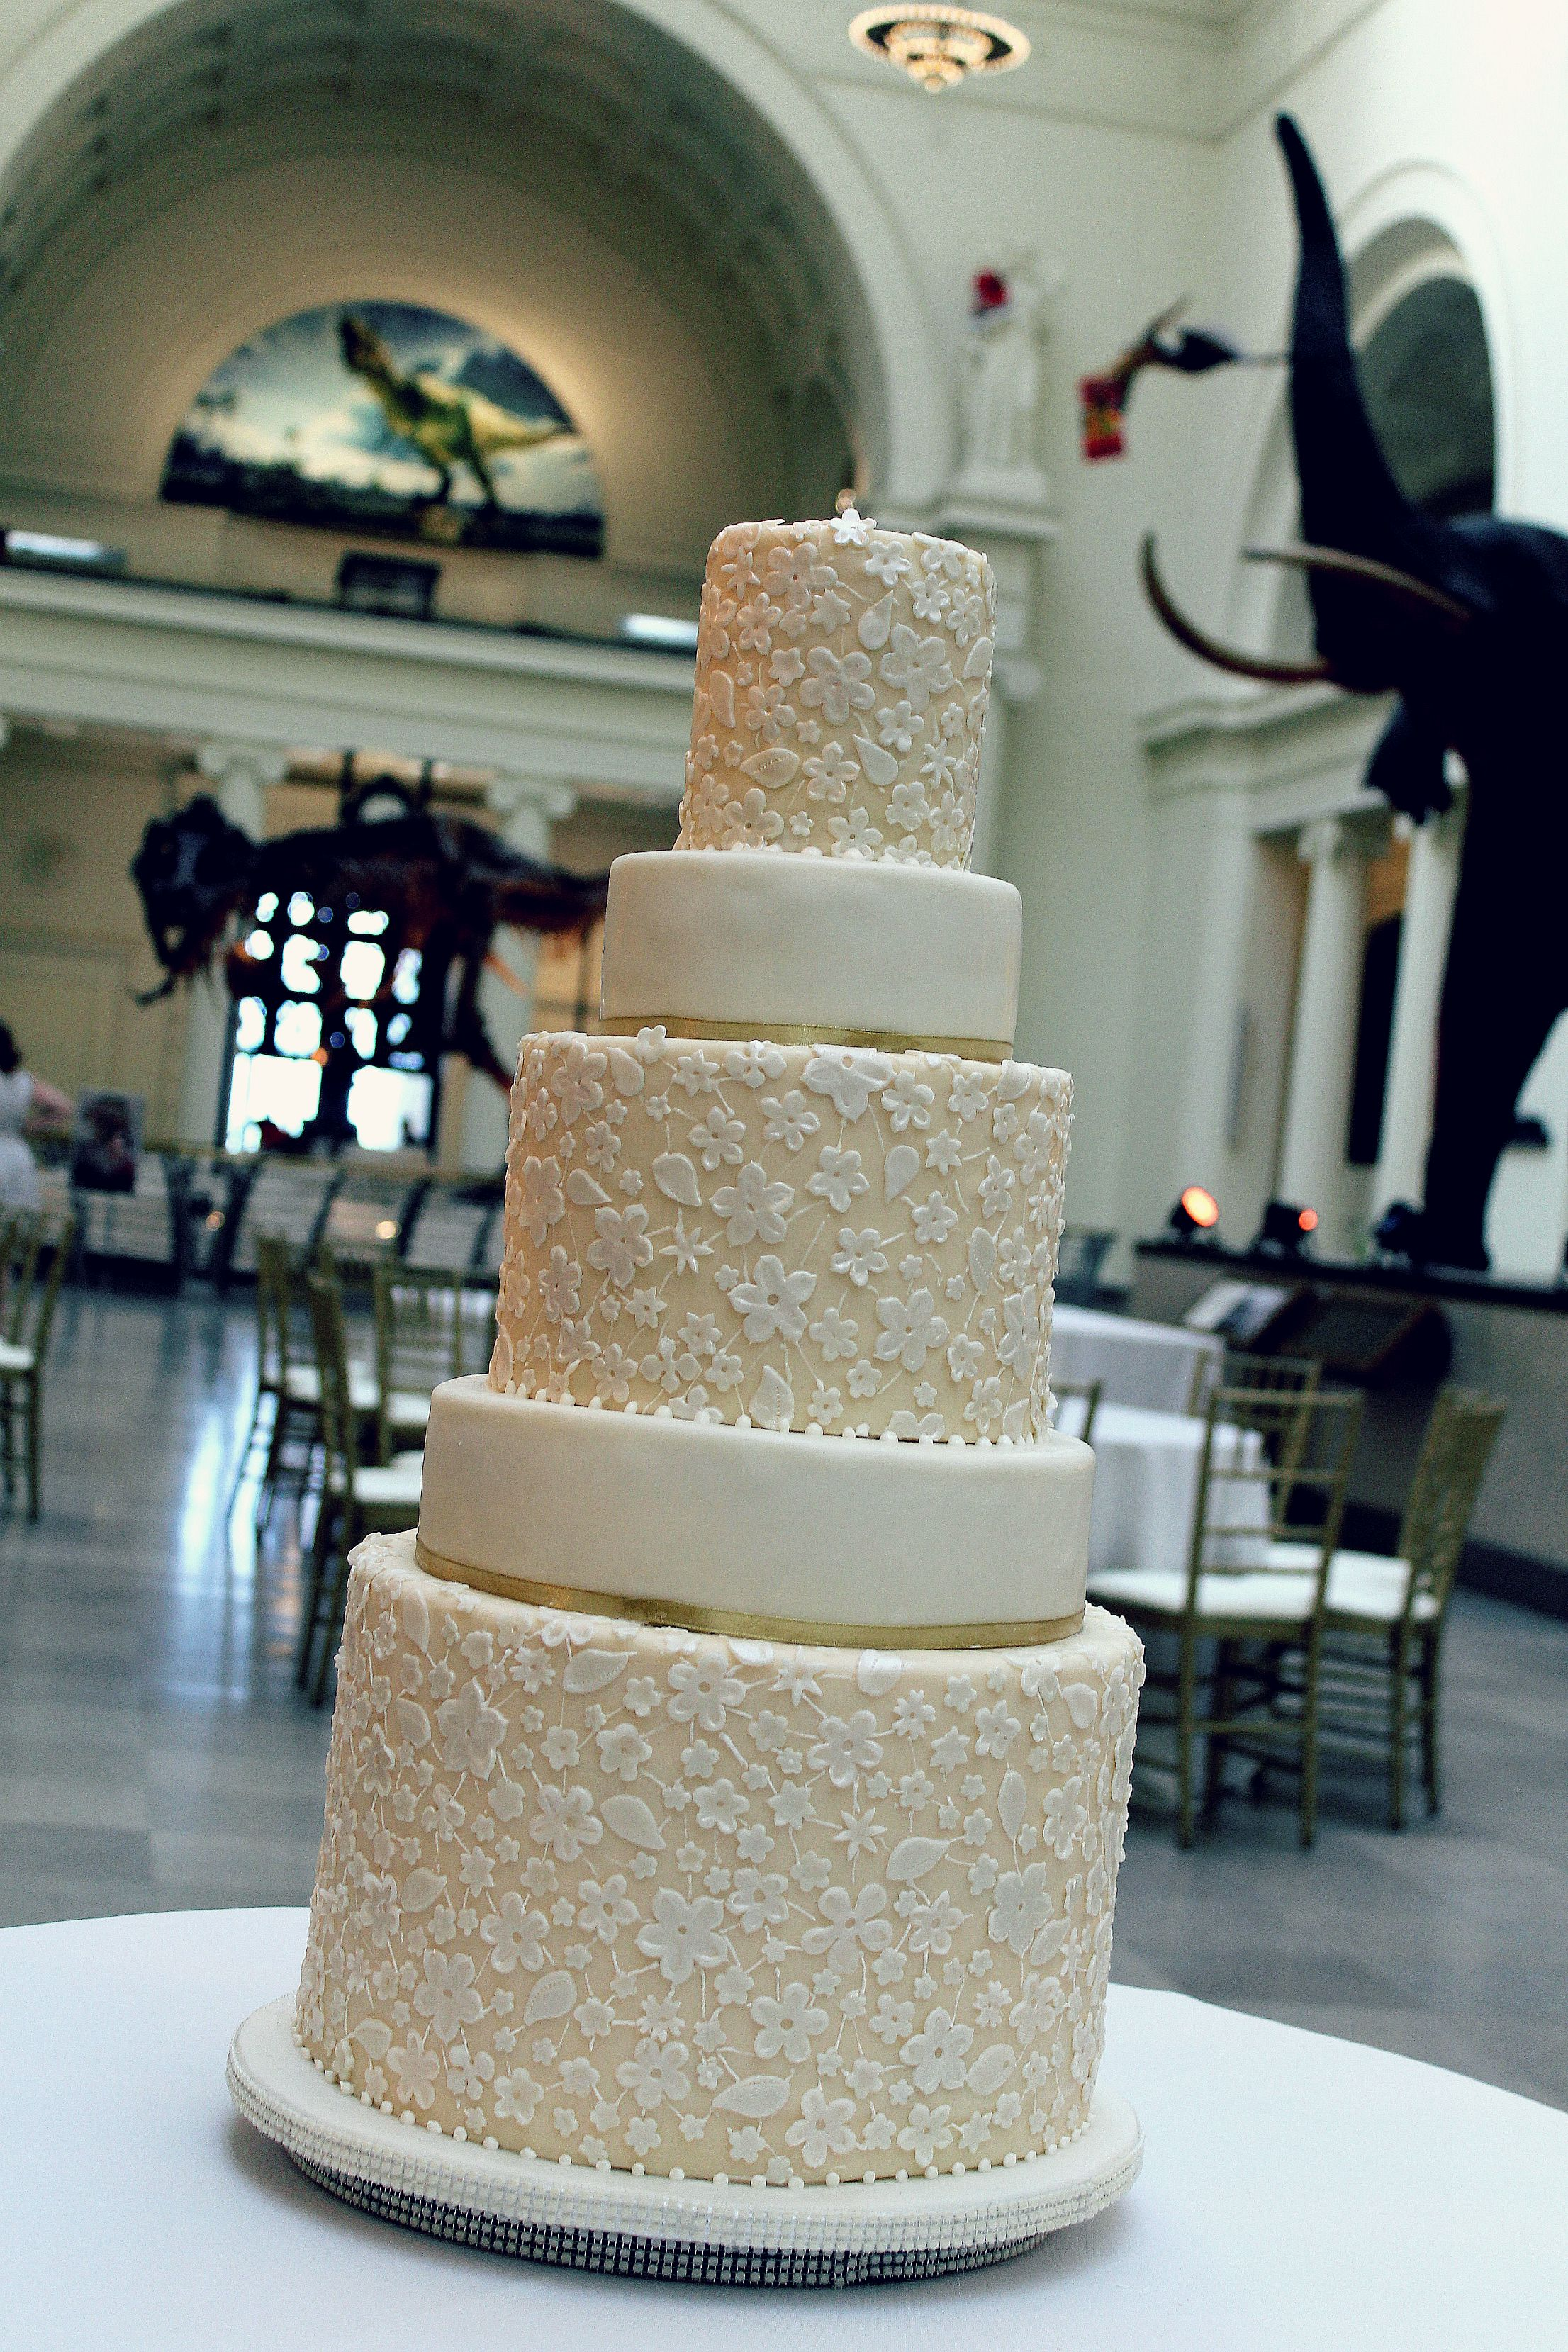 field museum lace wedding cake canon edit.jpg